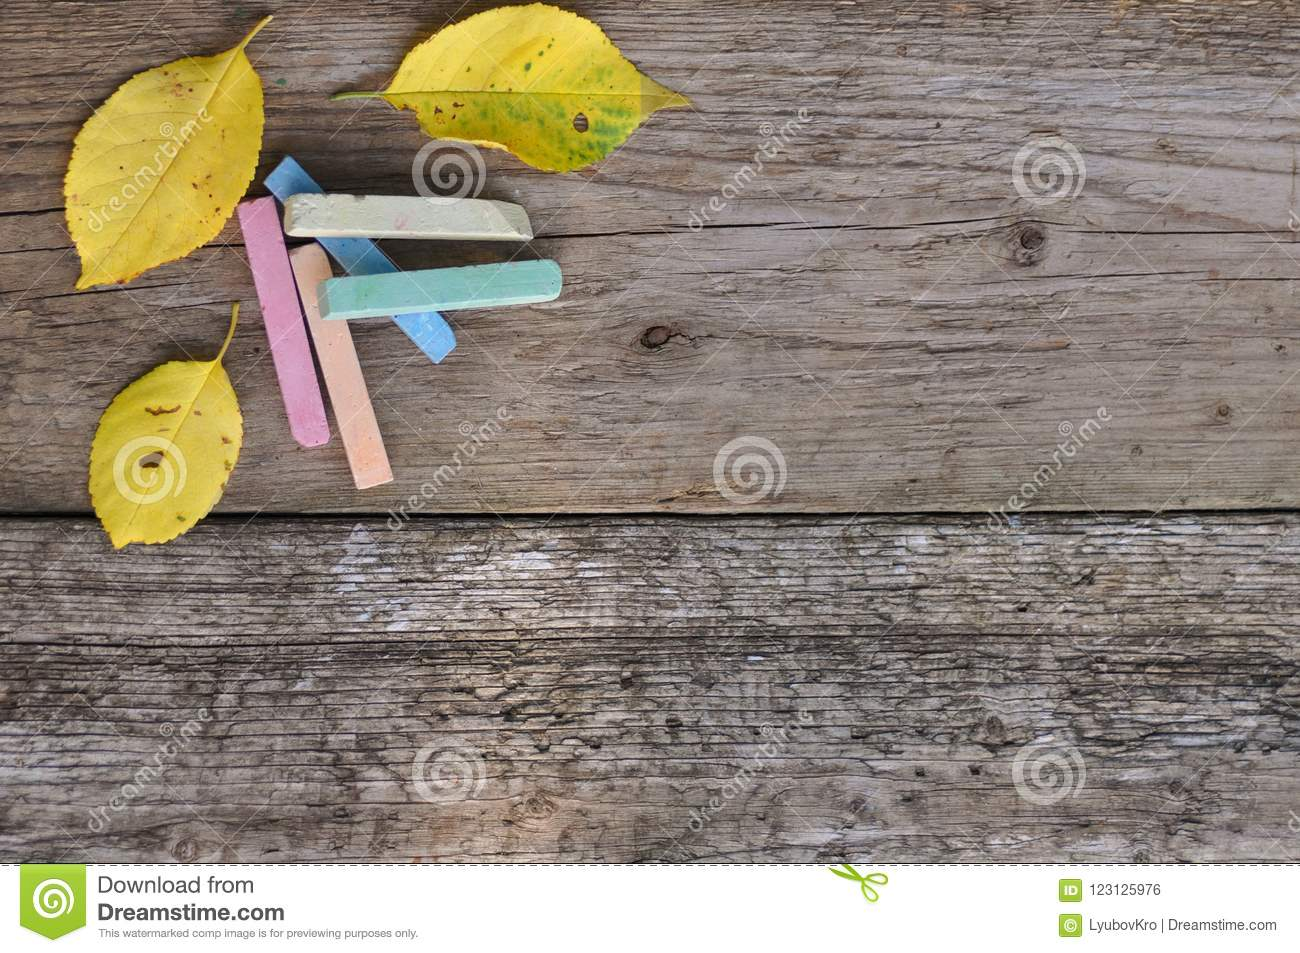 Colorful school crayons and yellow leaves on wooden background. rustic. September 1st.